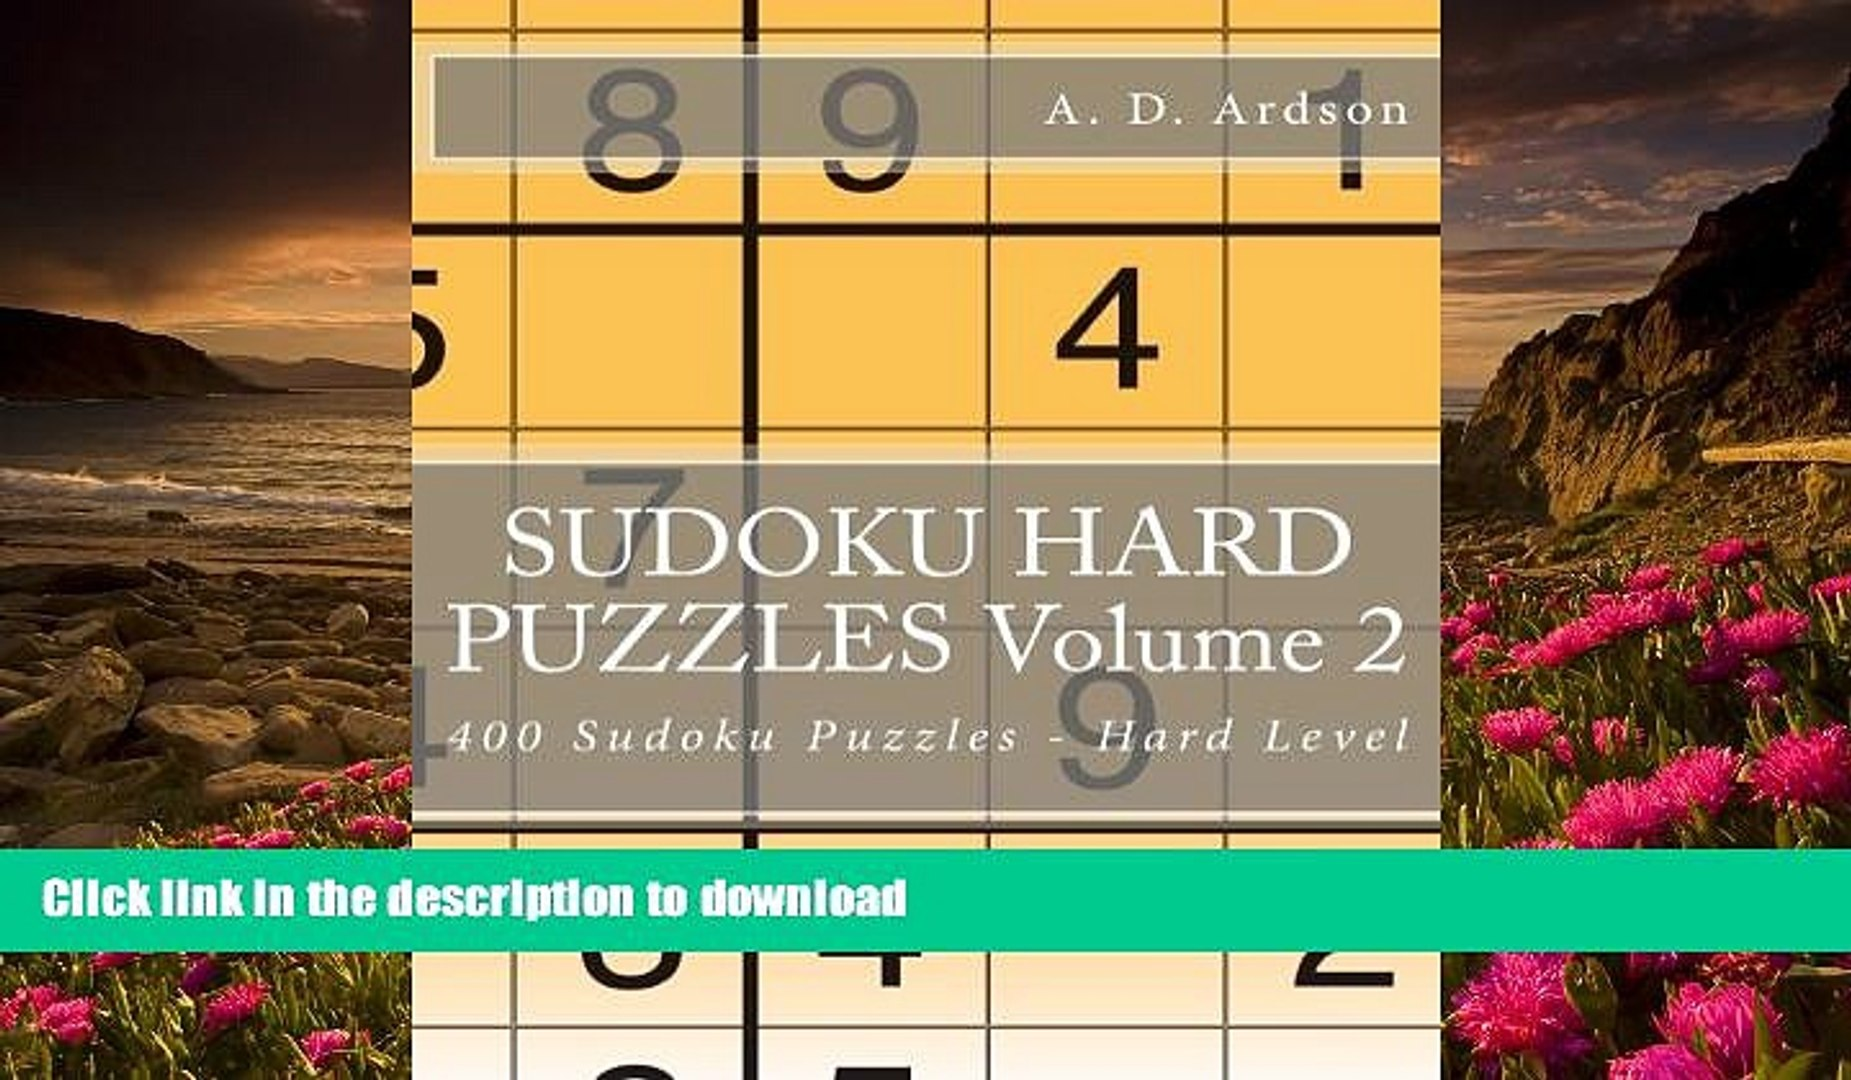 DOWNLOAD EBOOK SUDOKU HARD PUZZLES Volume 2: 400 Sudoku Puzzles - Hard  Level A  D  Ardson For Kindle